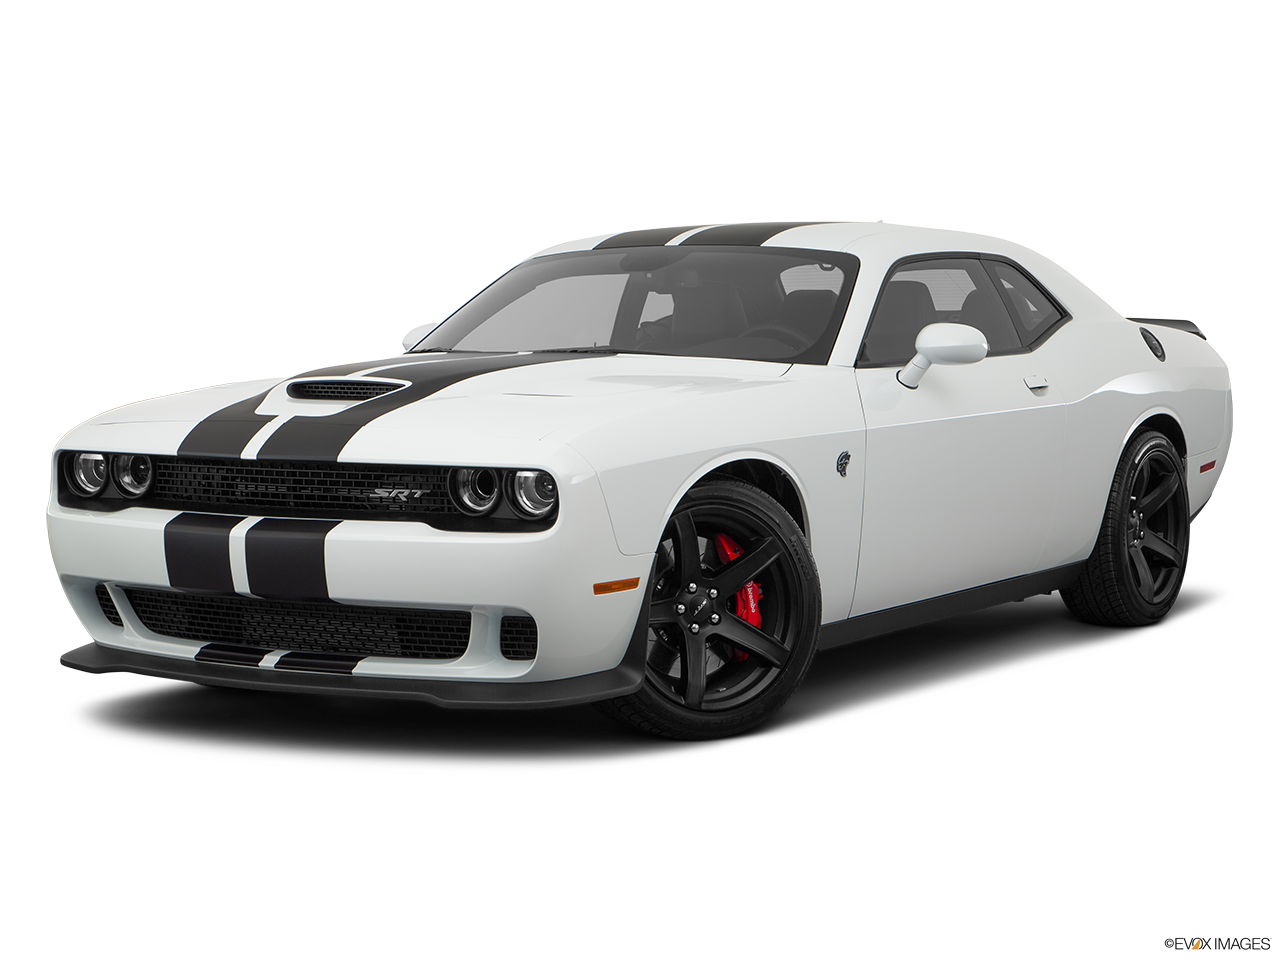 Test Drive A 2017 Dodge Challenger at Landmark Chrysler Dodge Jeep RAM of Morrow in Atlanta